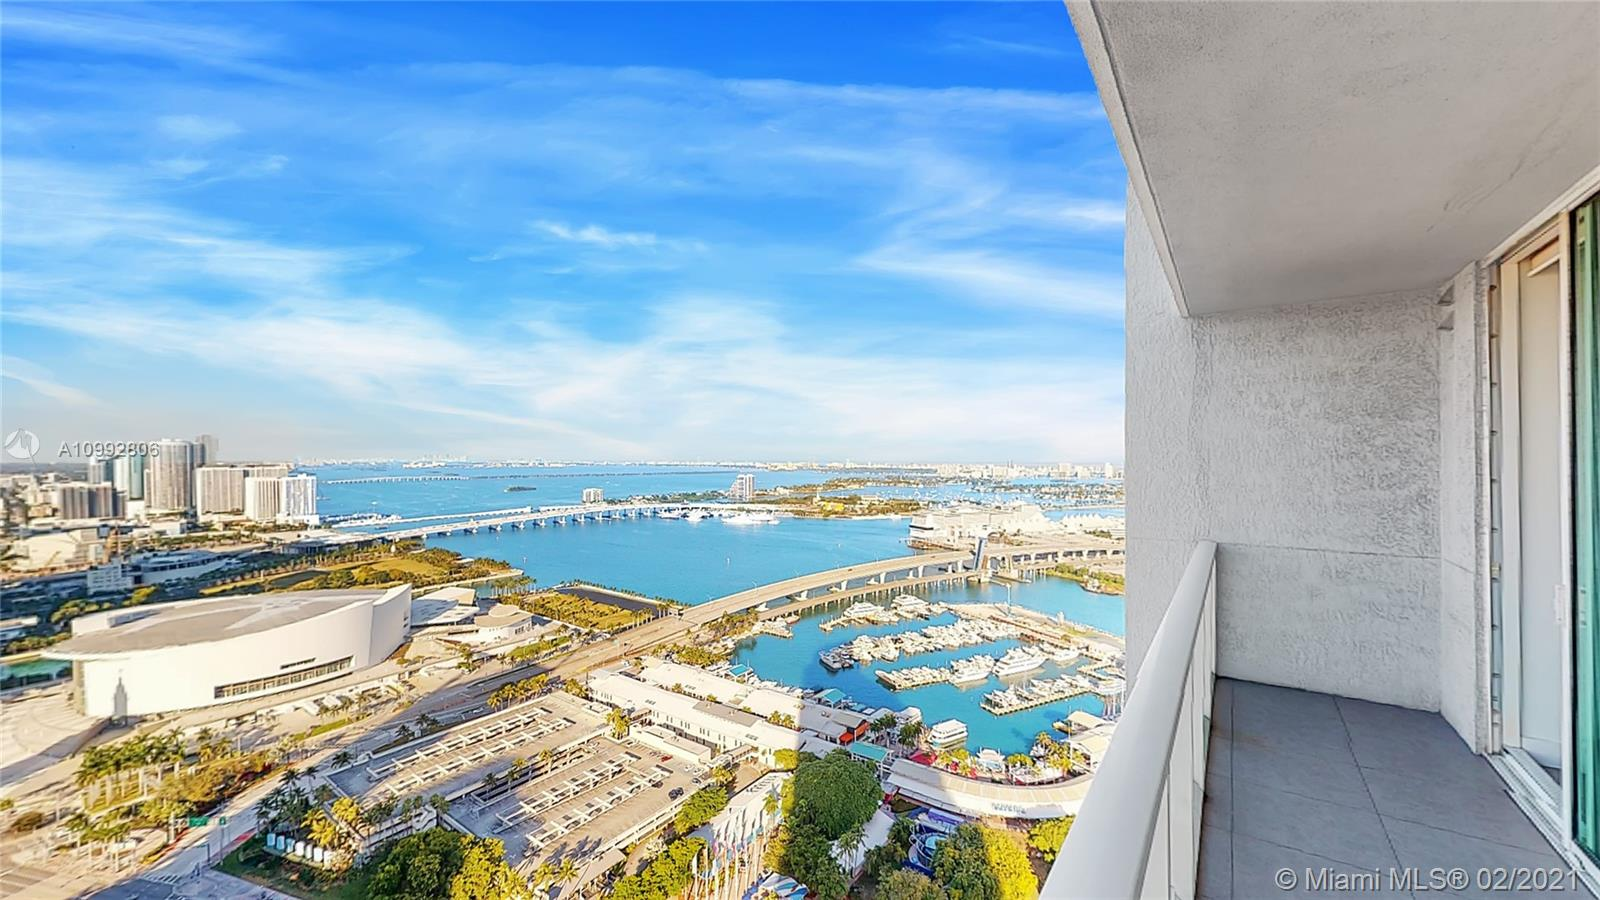 Experience Miami Downtown luxury living at its best. Wake up to extraordinary bay views from every room. Go for a coffee across the street at Bayside Marketplace. Walk to Metromover station for an aerial path to your Miami destination. All from a two beds and two full baths unit with ample balcony facing the Bay, Bayside Marketplace and American Airlines Arena.